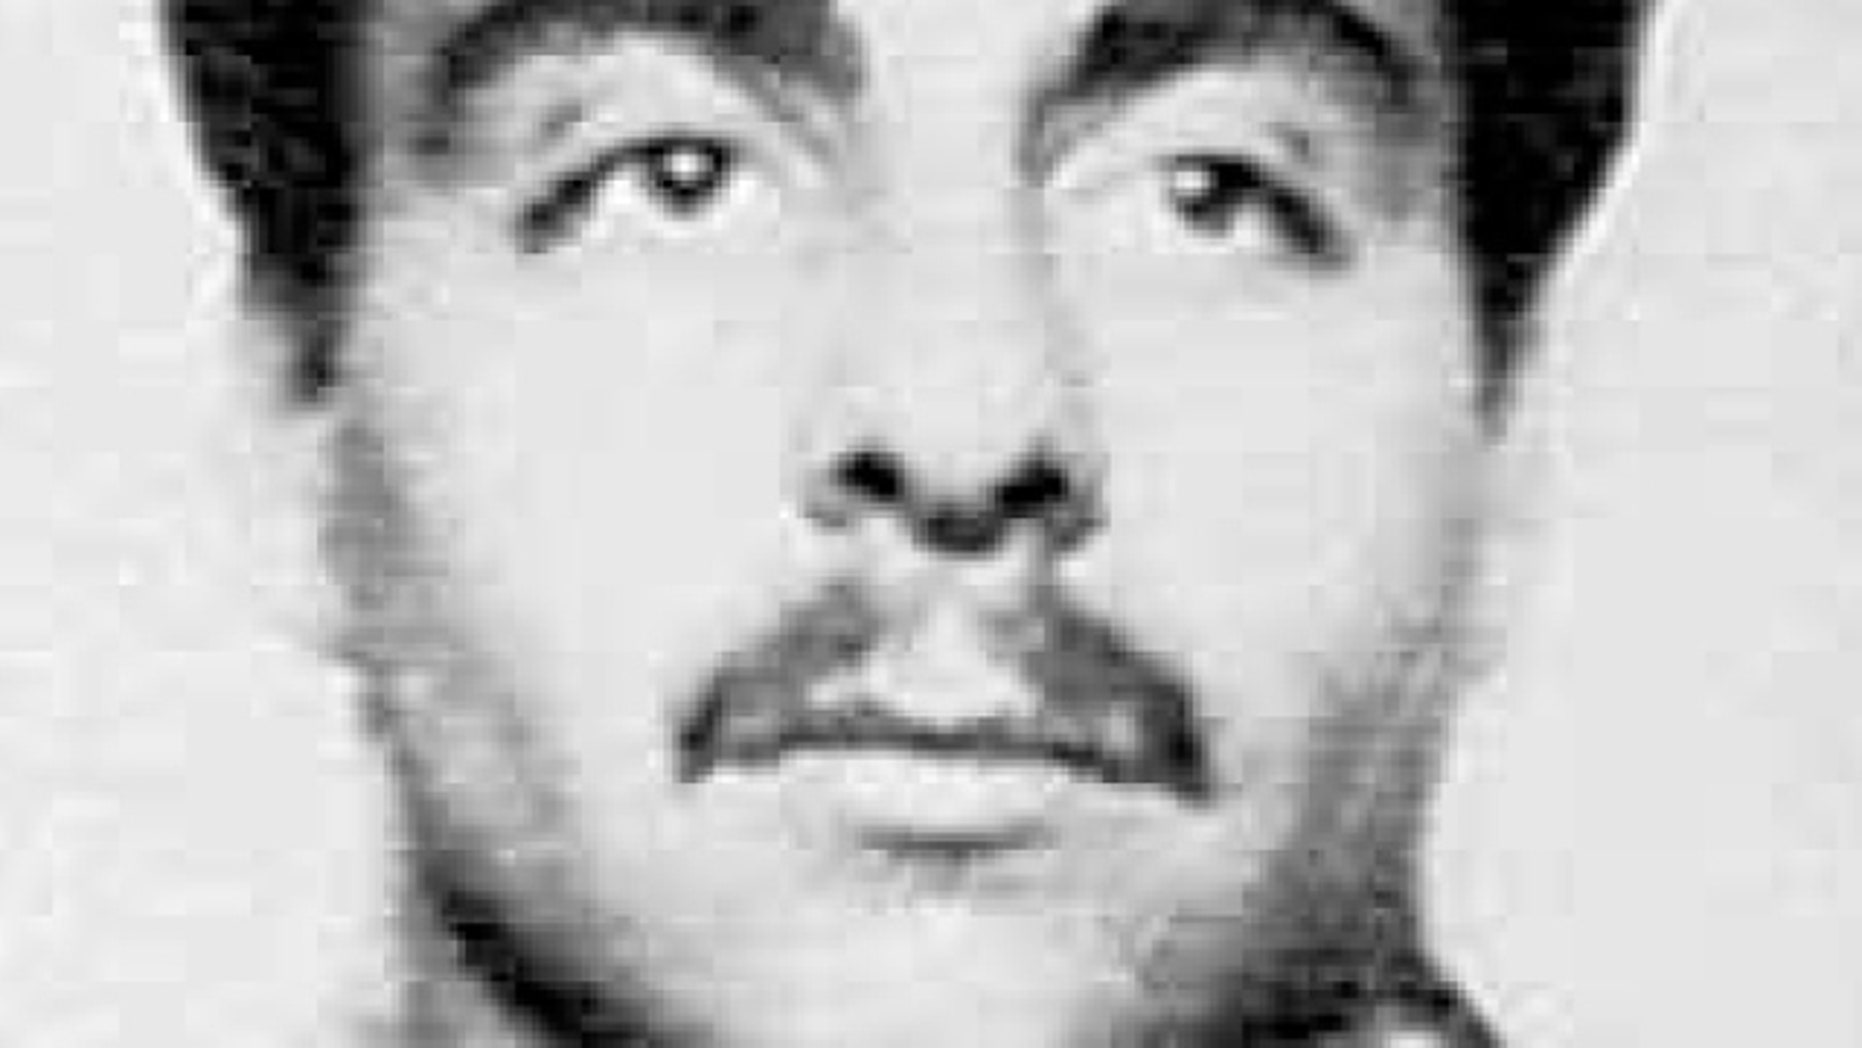 FILE: This photo provided by the U.S. Marshals Service shows Vincent Legrend Walters.